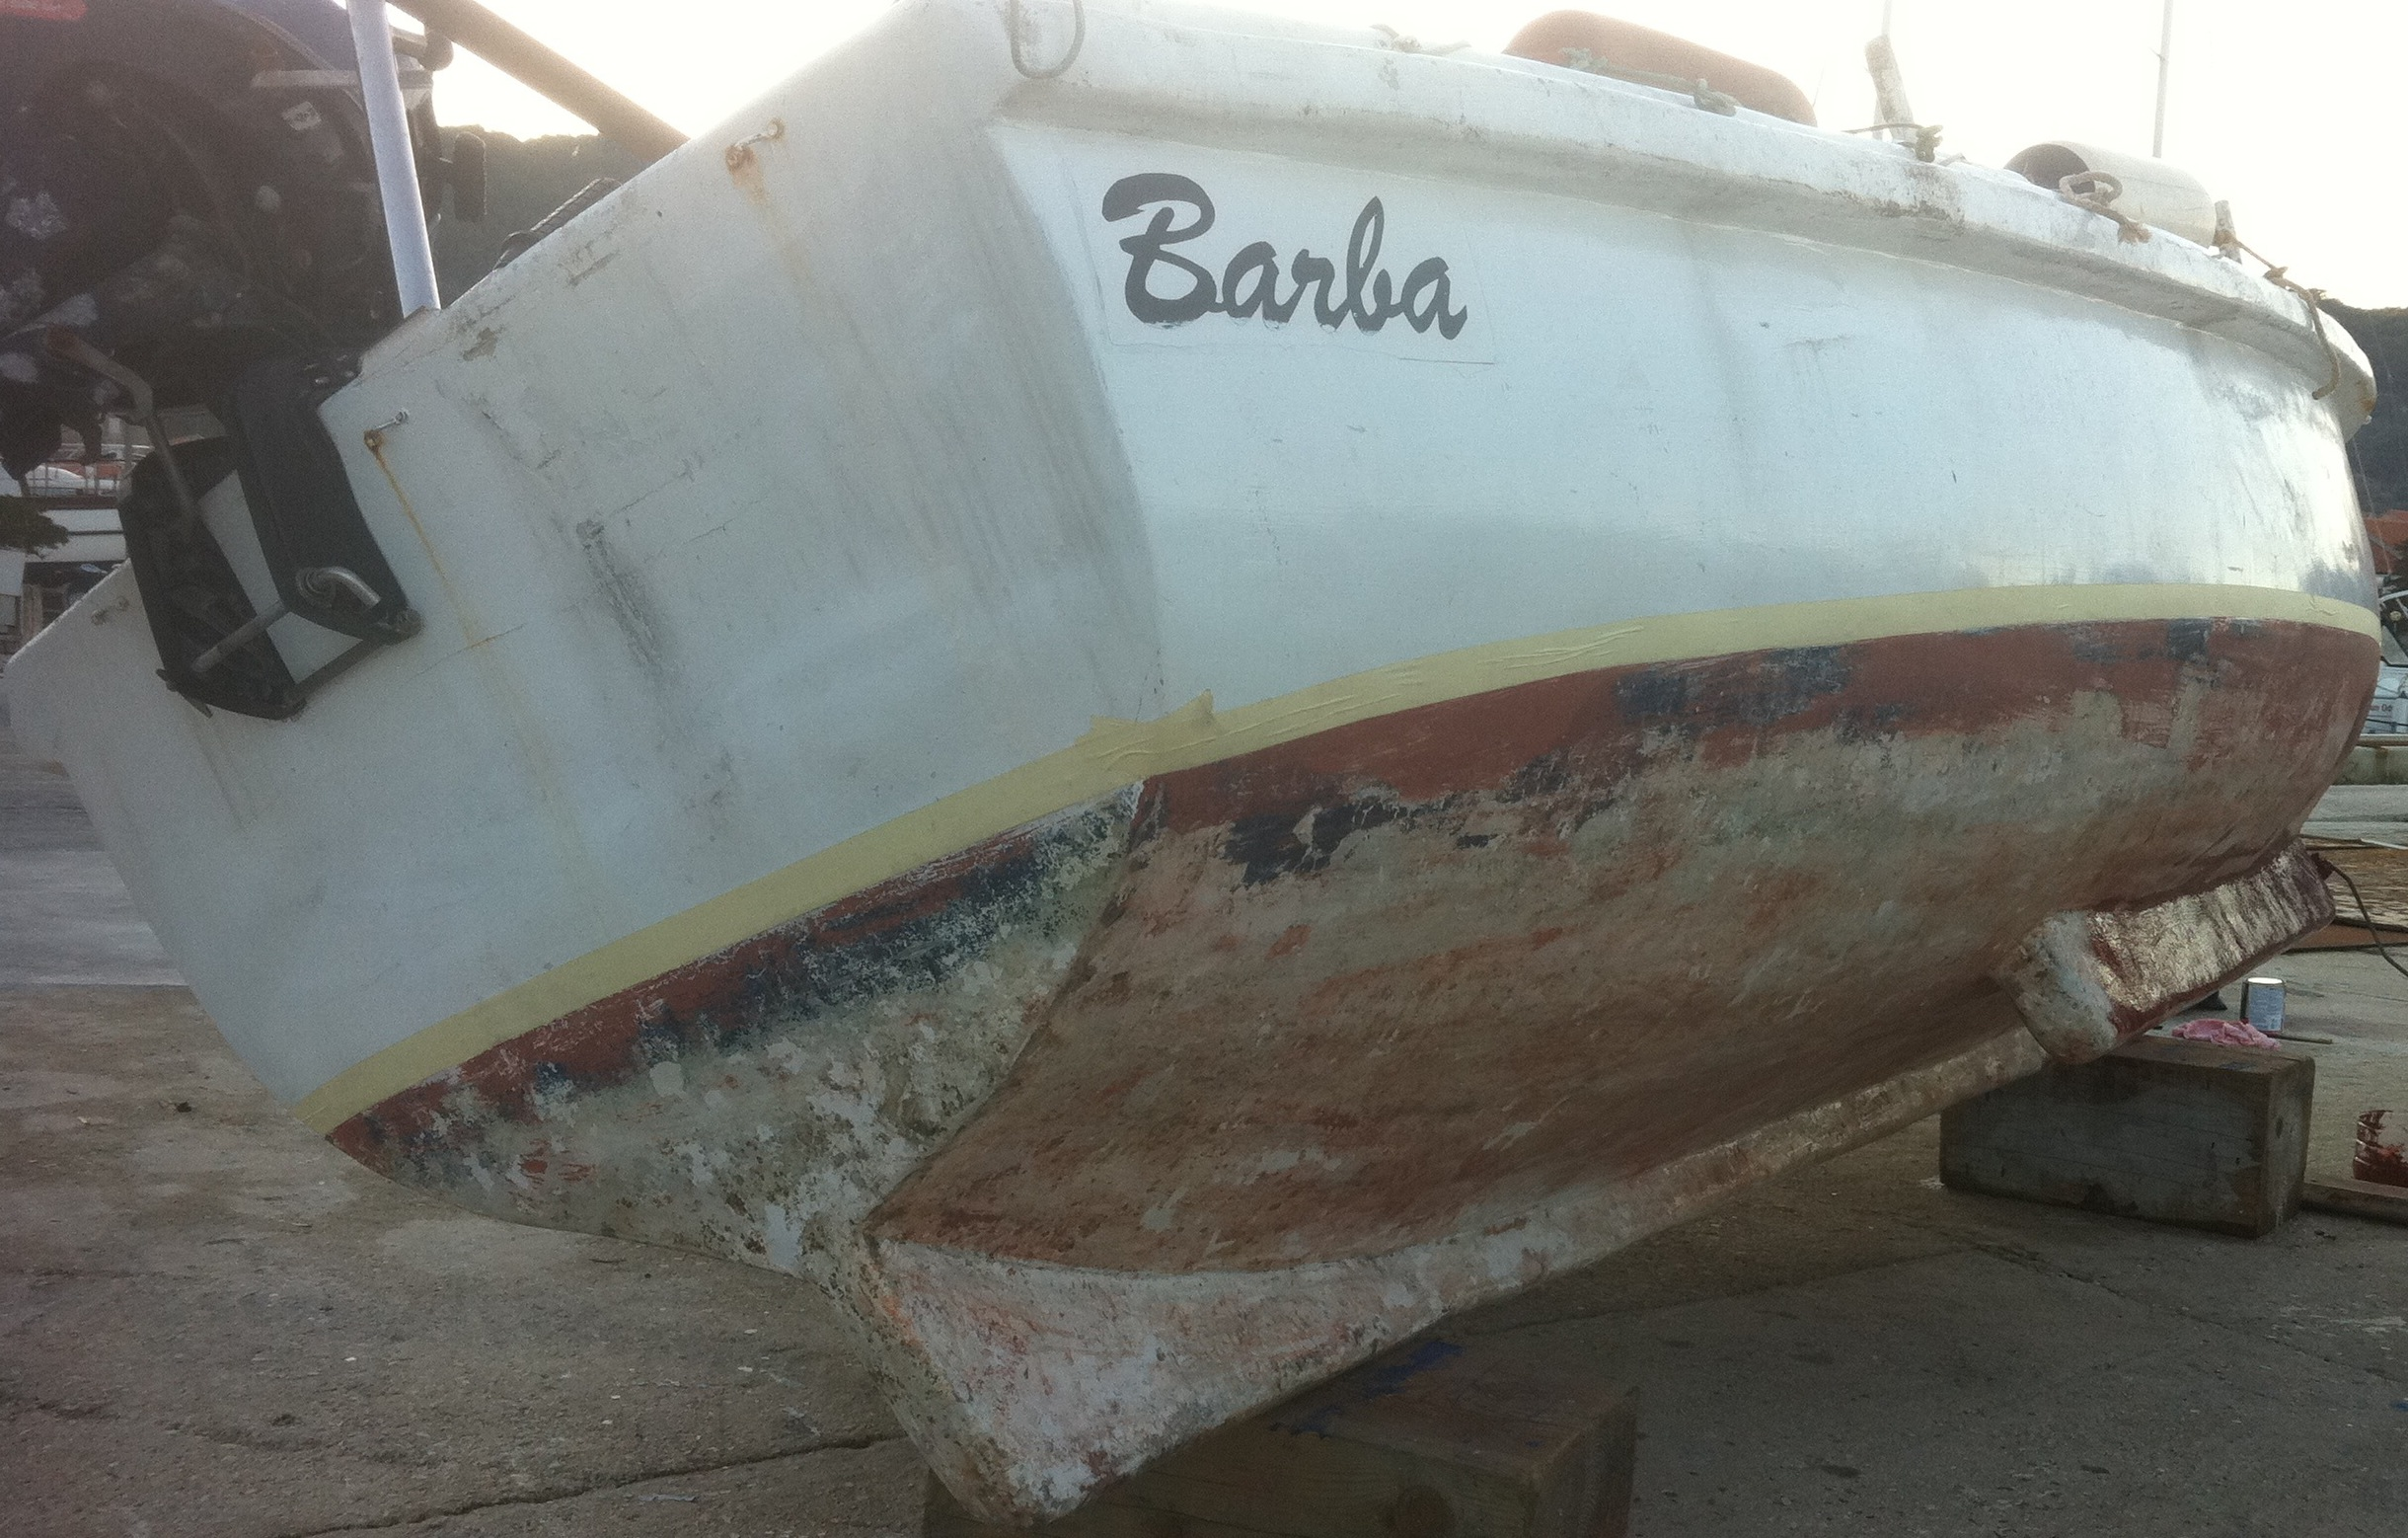 Kaic (small fishing boat) waiting for its coat of anti-fouling